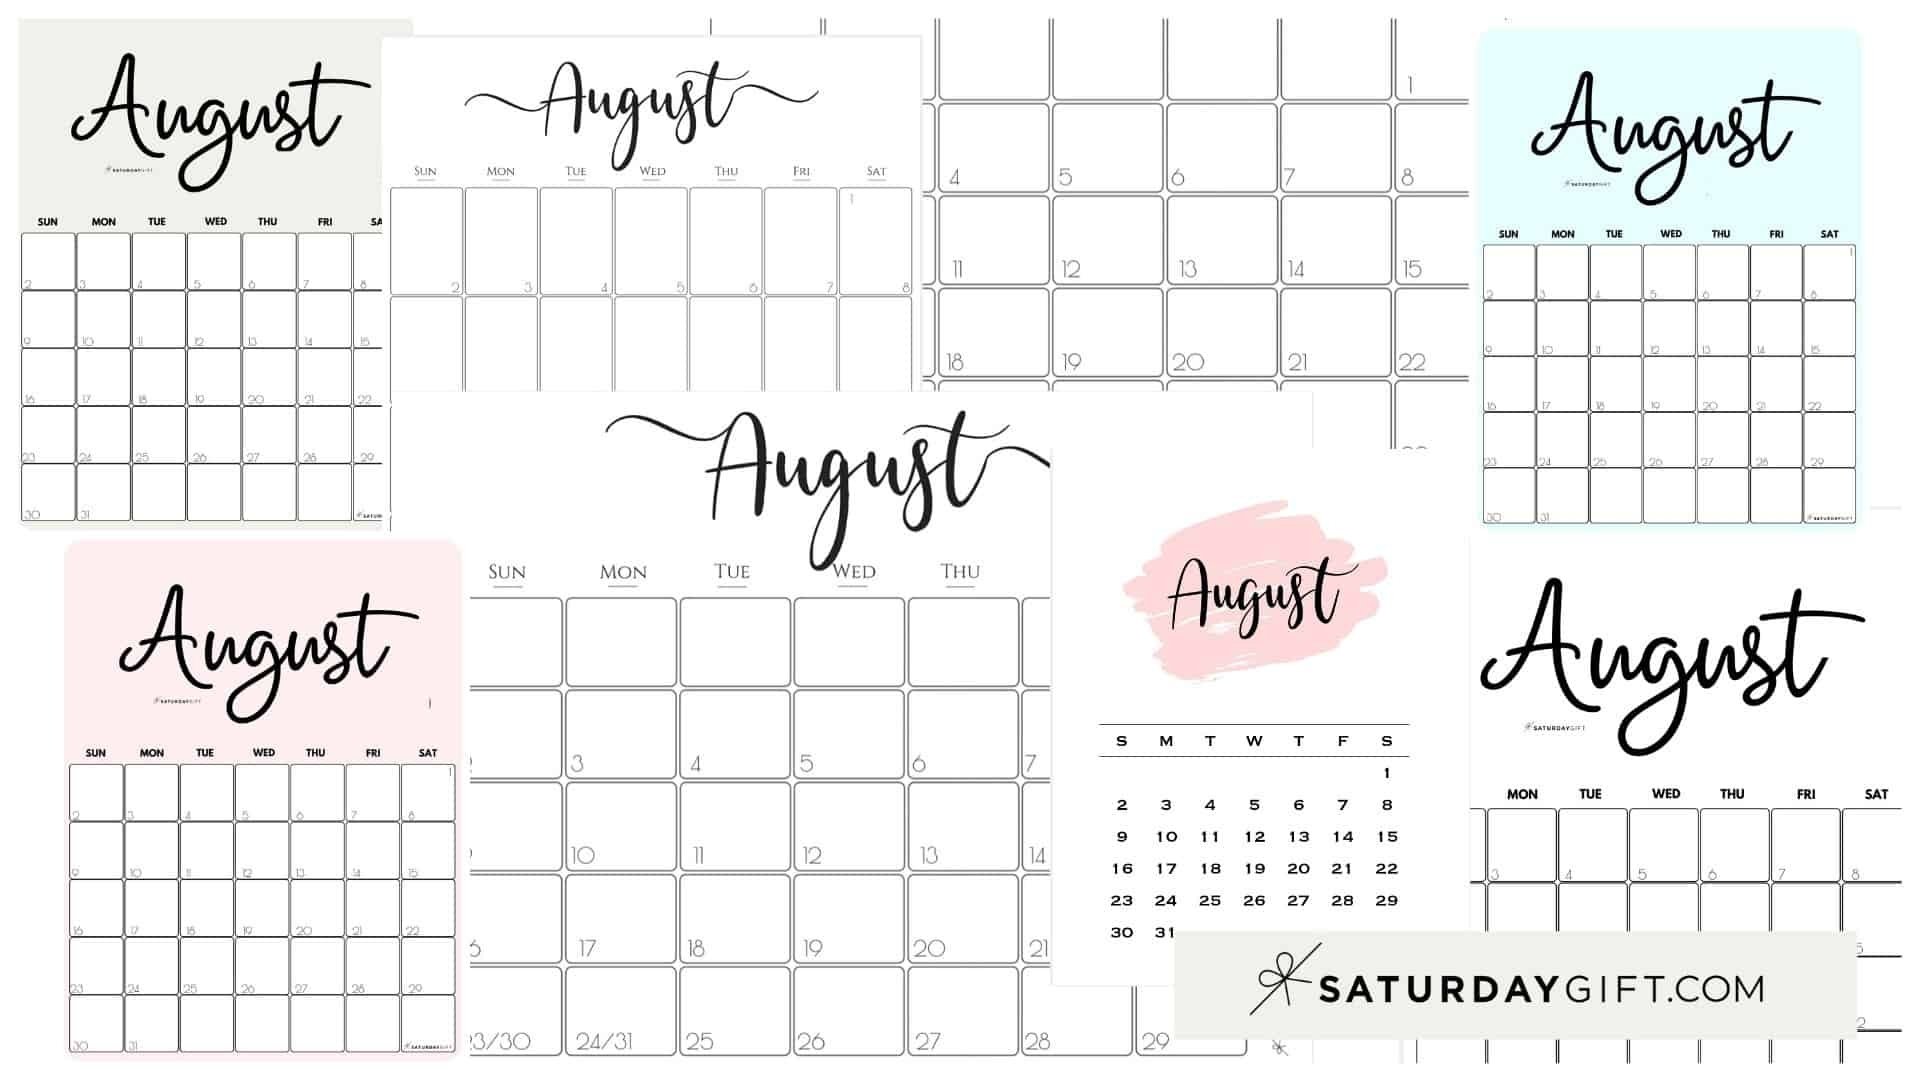 Get August Calendar To Type On 2021